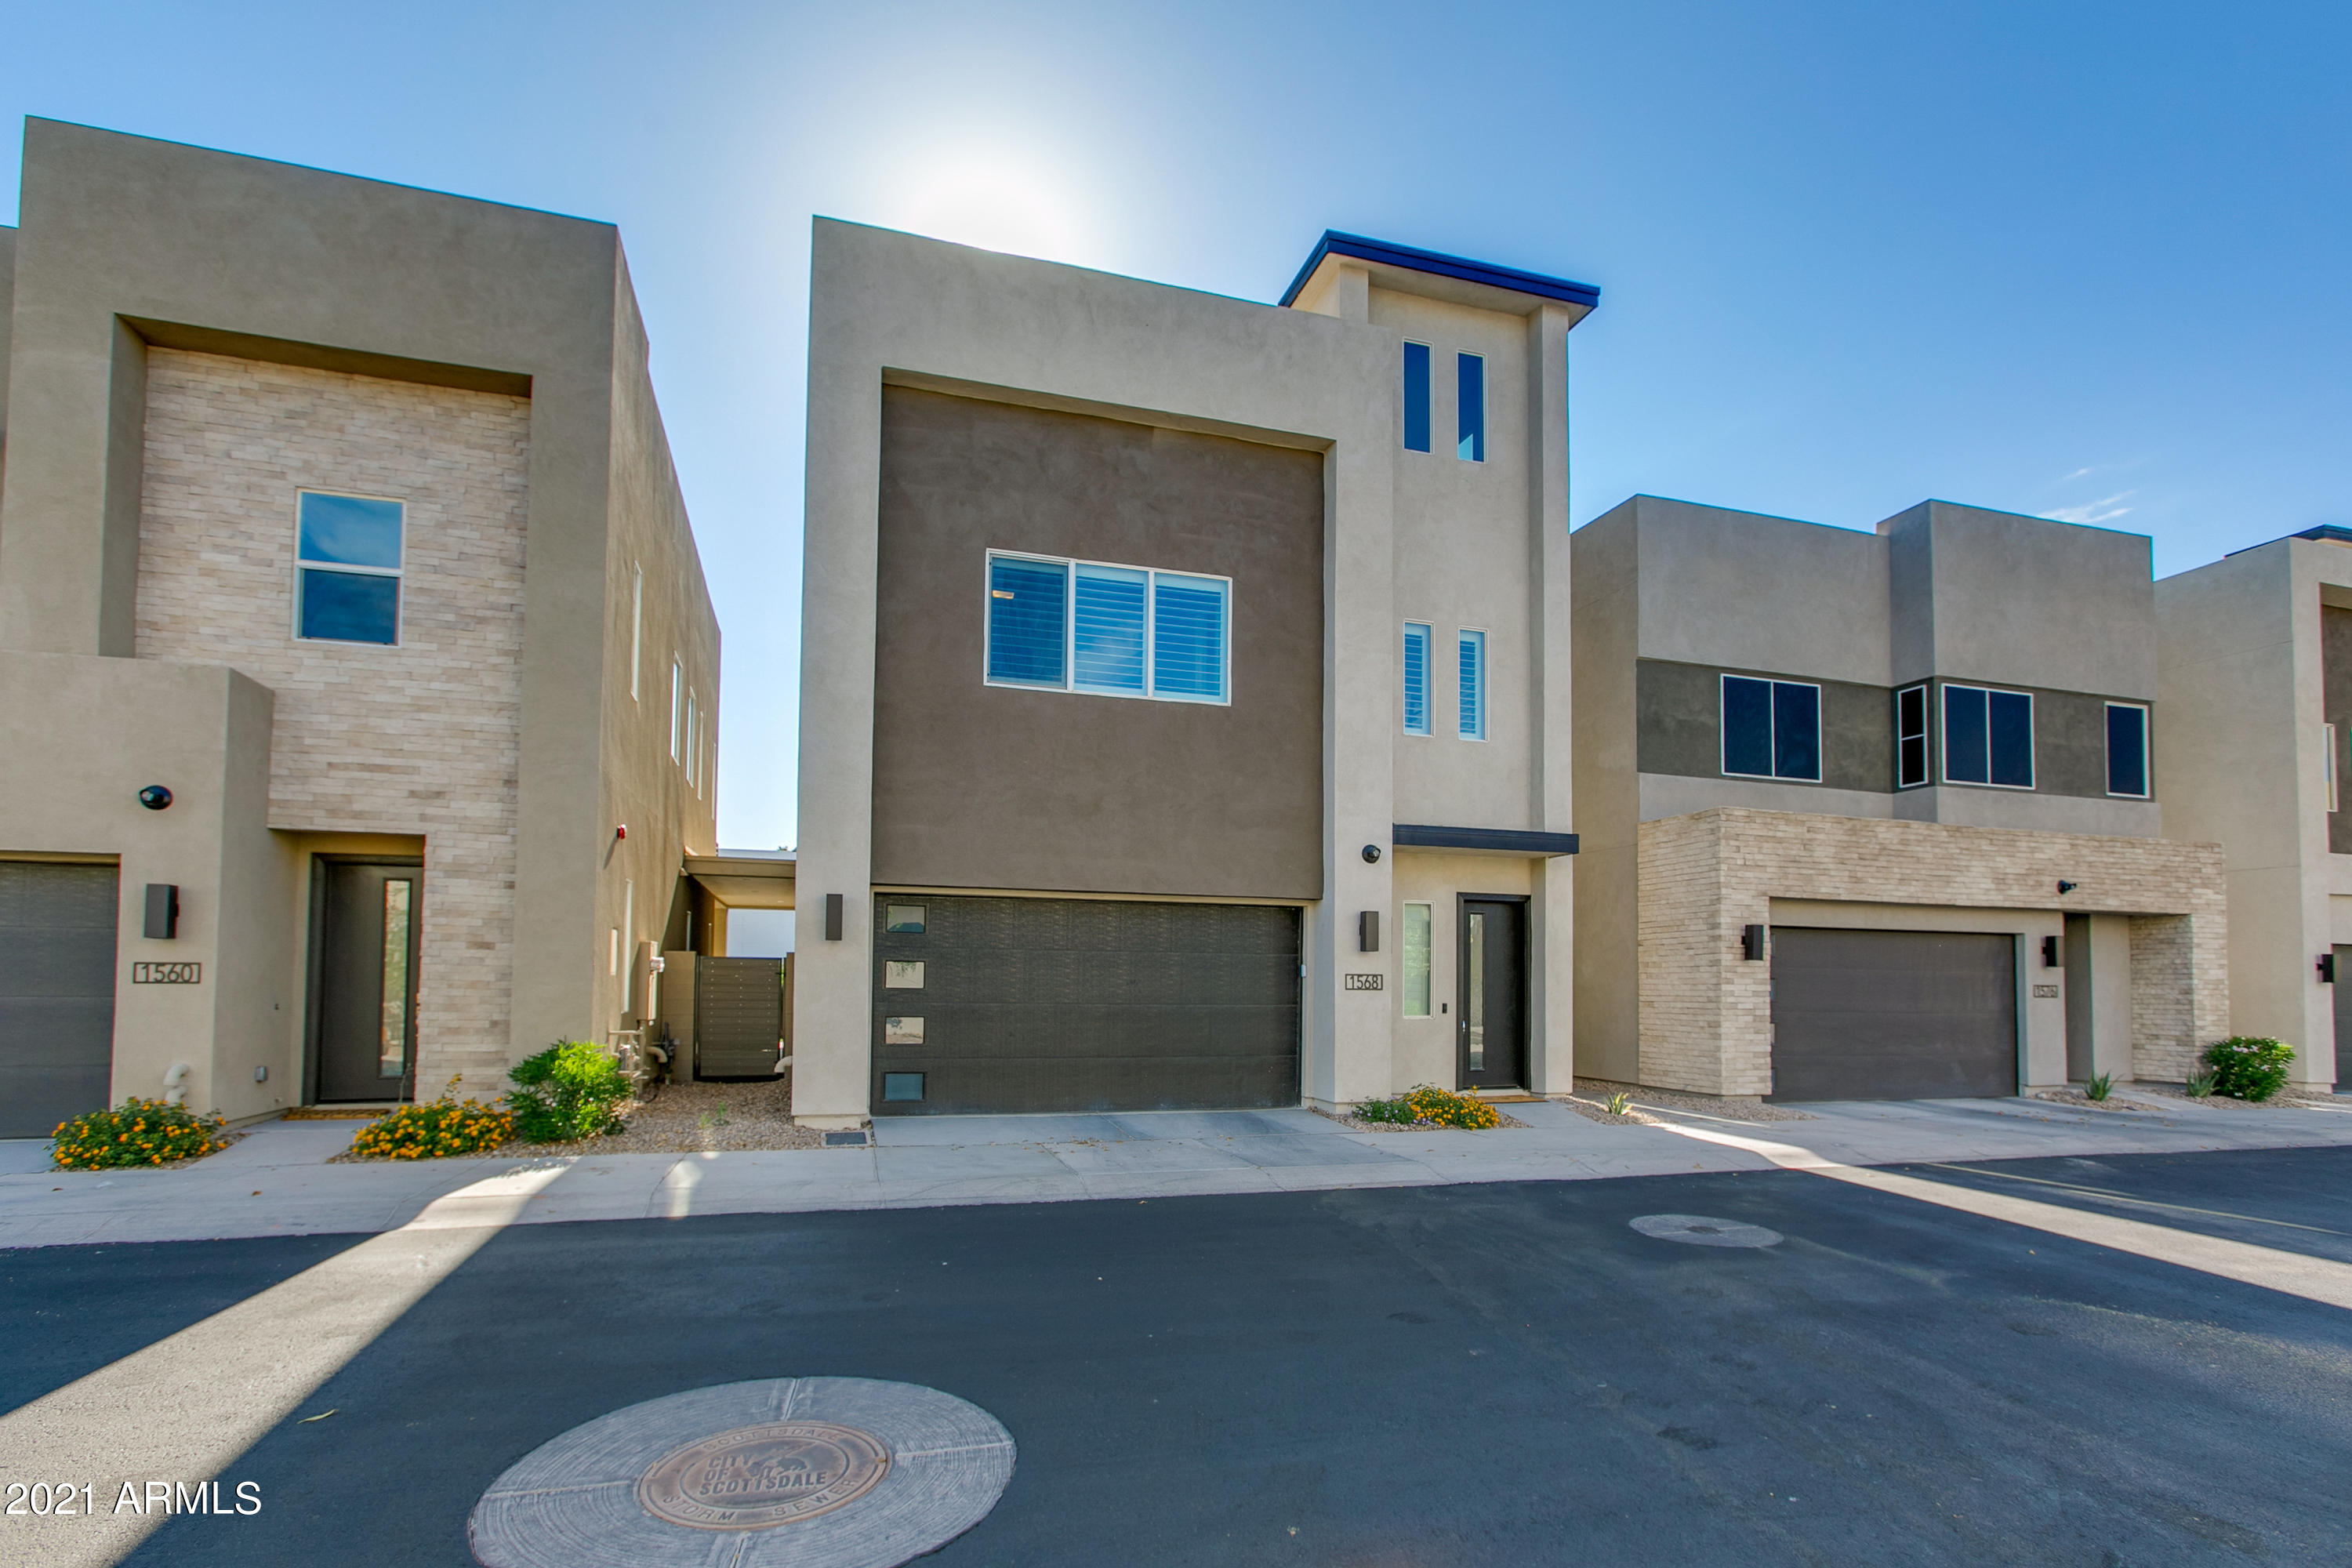 This newer 2019 build is tucked away in the gated community of Skye on Mcdowell. Located just minutes from all of the popular dining and nightlife in Old Town Scottsdale, this fantastic location offers quick access to Papago Park, Indian Bend Wash Greenbelt, Scottsdale Stadium, Fashion Square, Loop 101 & 202 Freeways!  This home will appeal to anyone seeking contemporary design with an open concept and the perfect indoor/outdoor flow. Enjoy a gourmet kitchen with a gas range, large quartz topped island, sleek cabinetry, and stainless appliances. Relax in your low maintenance backyard, under the covered patio, or head upstairs to the rooftop deck to bask in the sunset and savor the stunning 360 degree views!